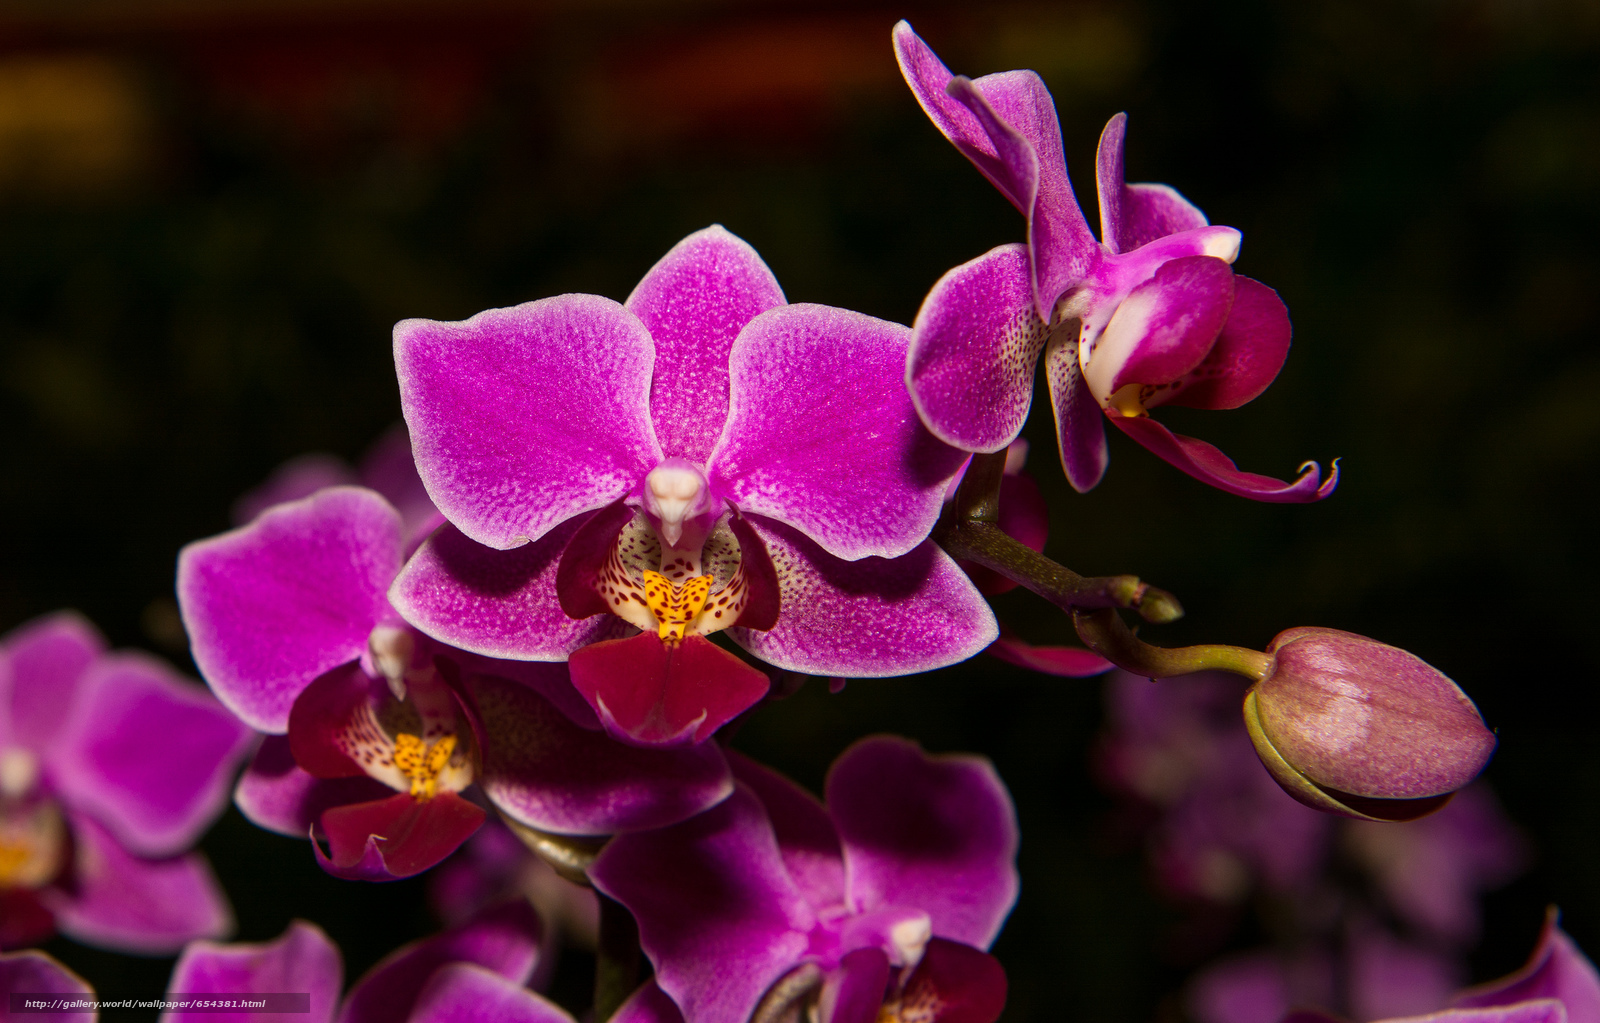 Download wallpaper orchid,  flower,  flora free desktop wallpaper in the resolution 2048x1309 — picture №654381